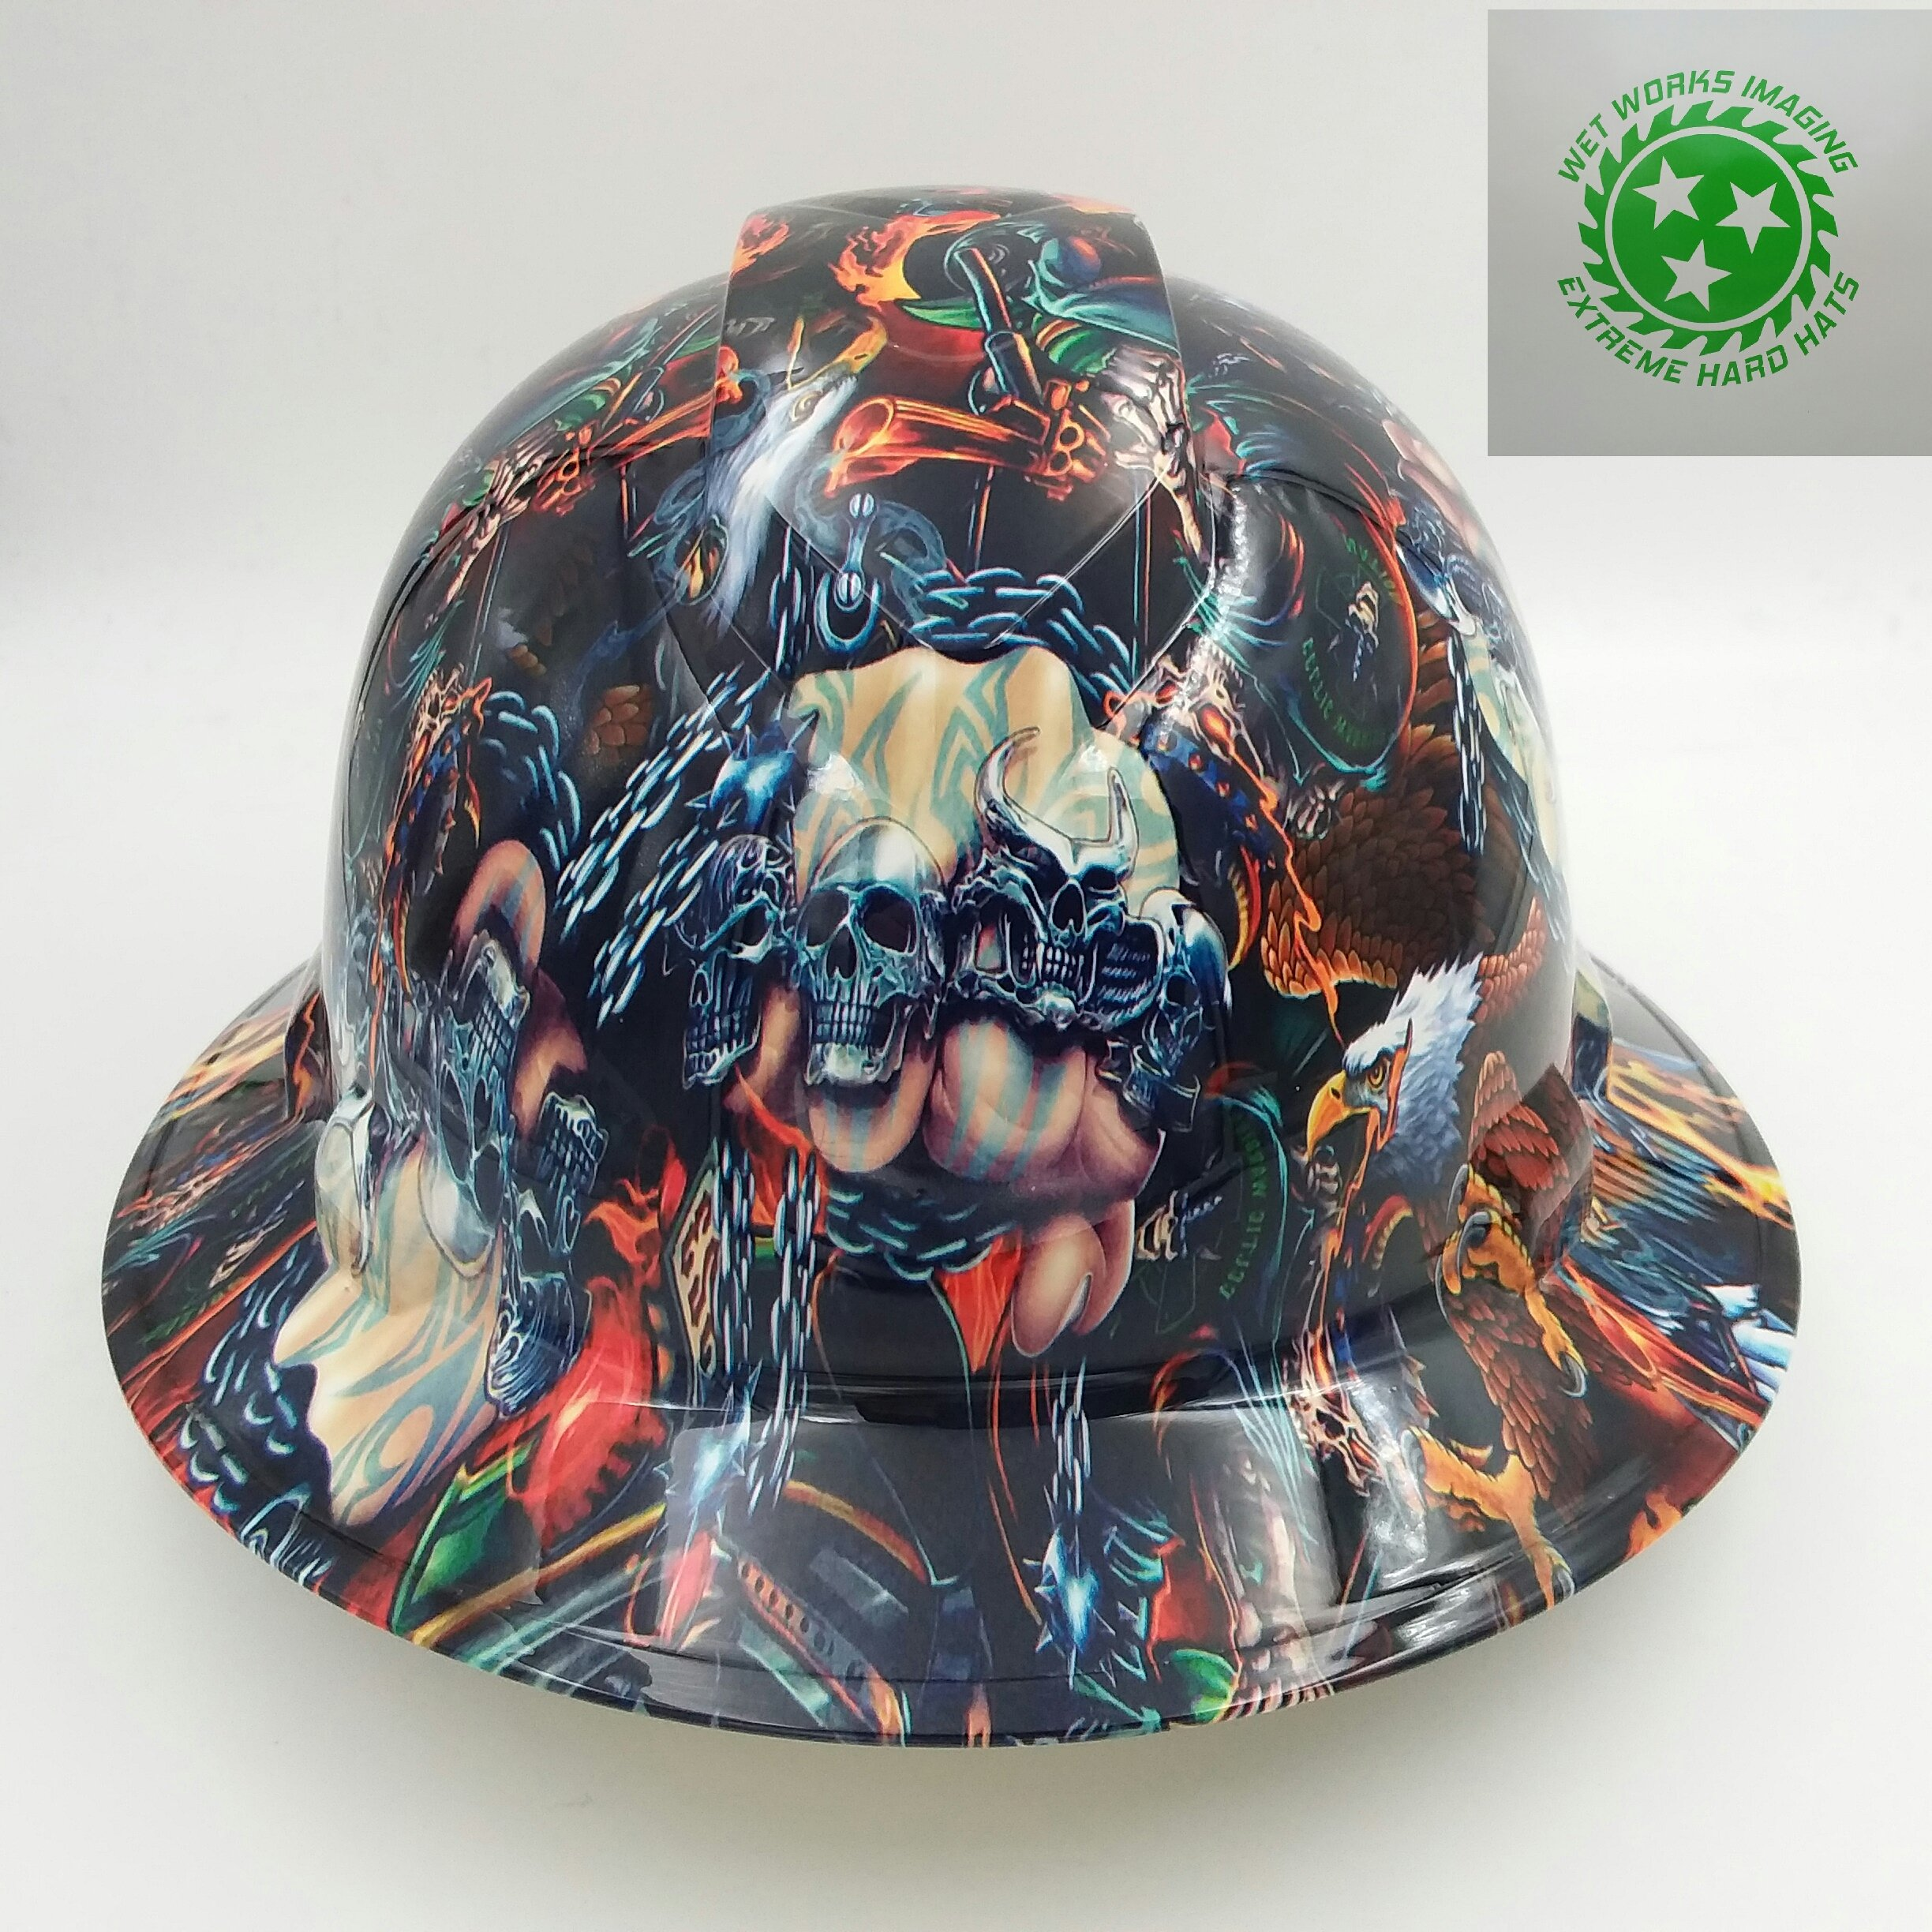 Wet Works Imaging Customized Pyramex Full Brim Full Color Way Of The Fist Hard Hat With Ratcheting Suspension